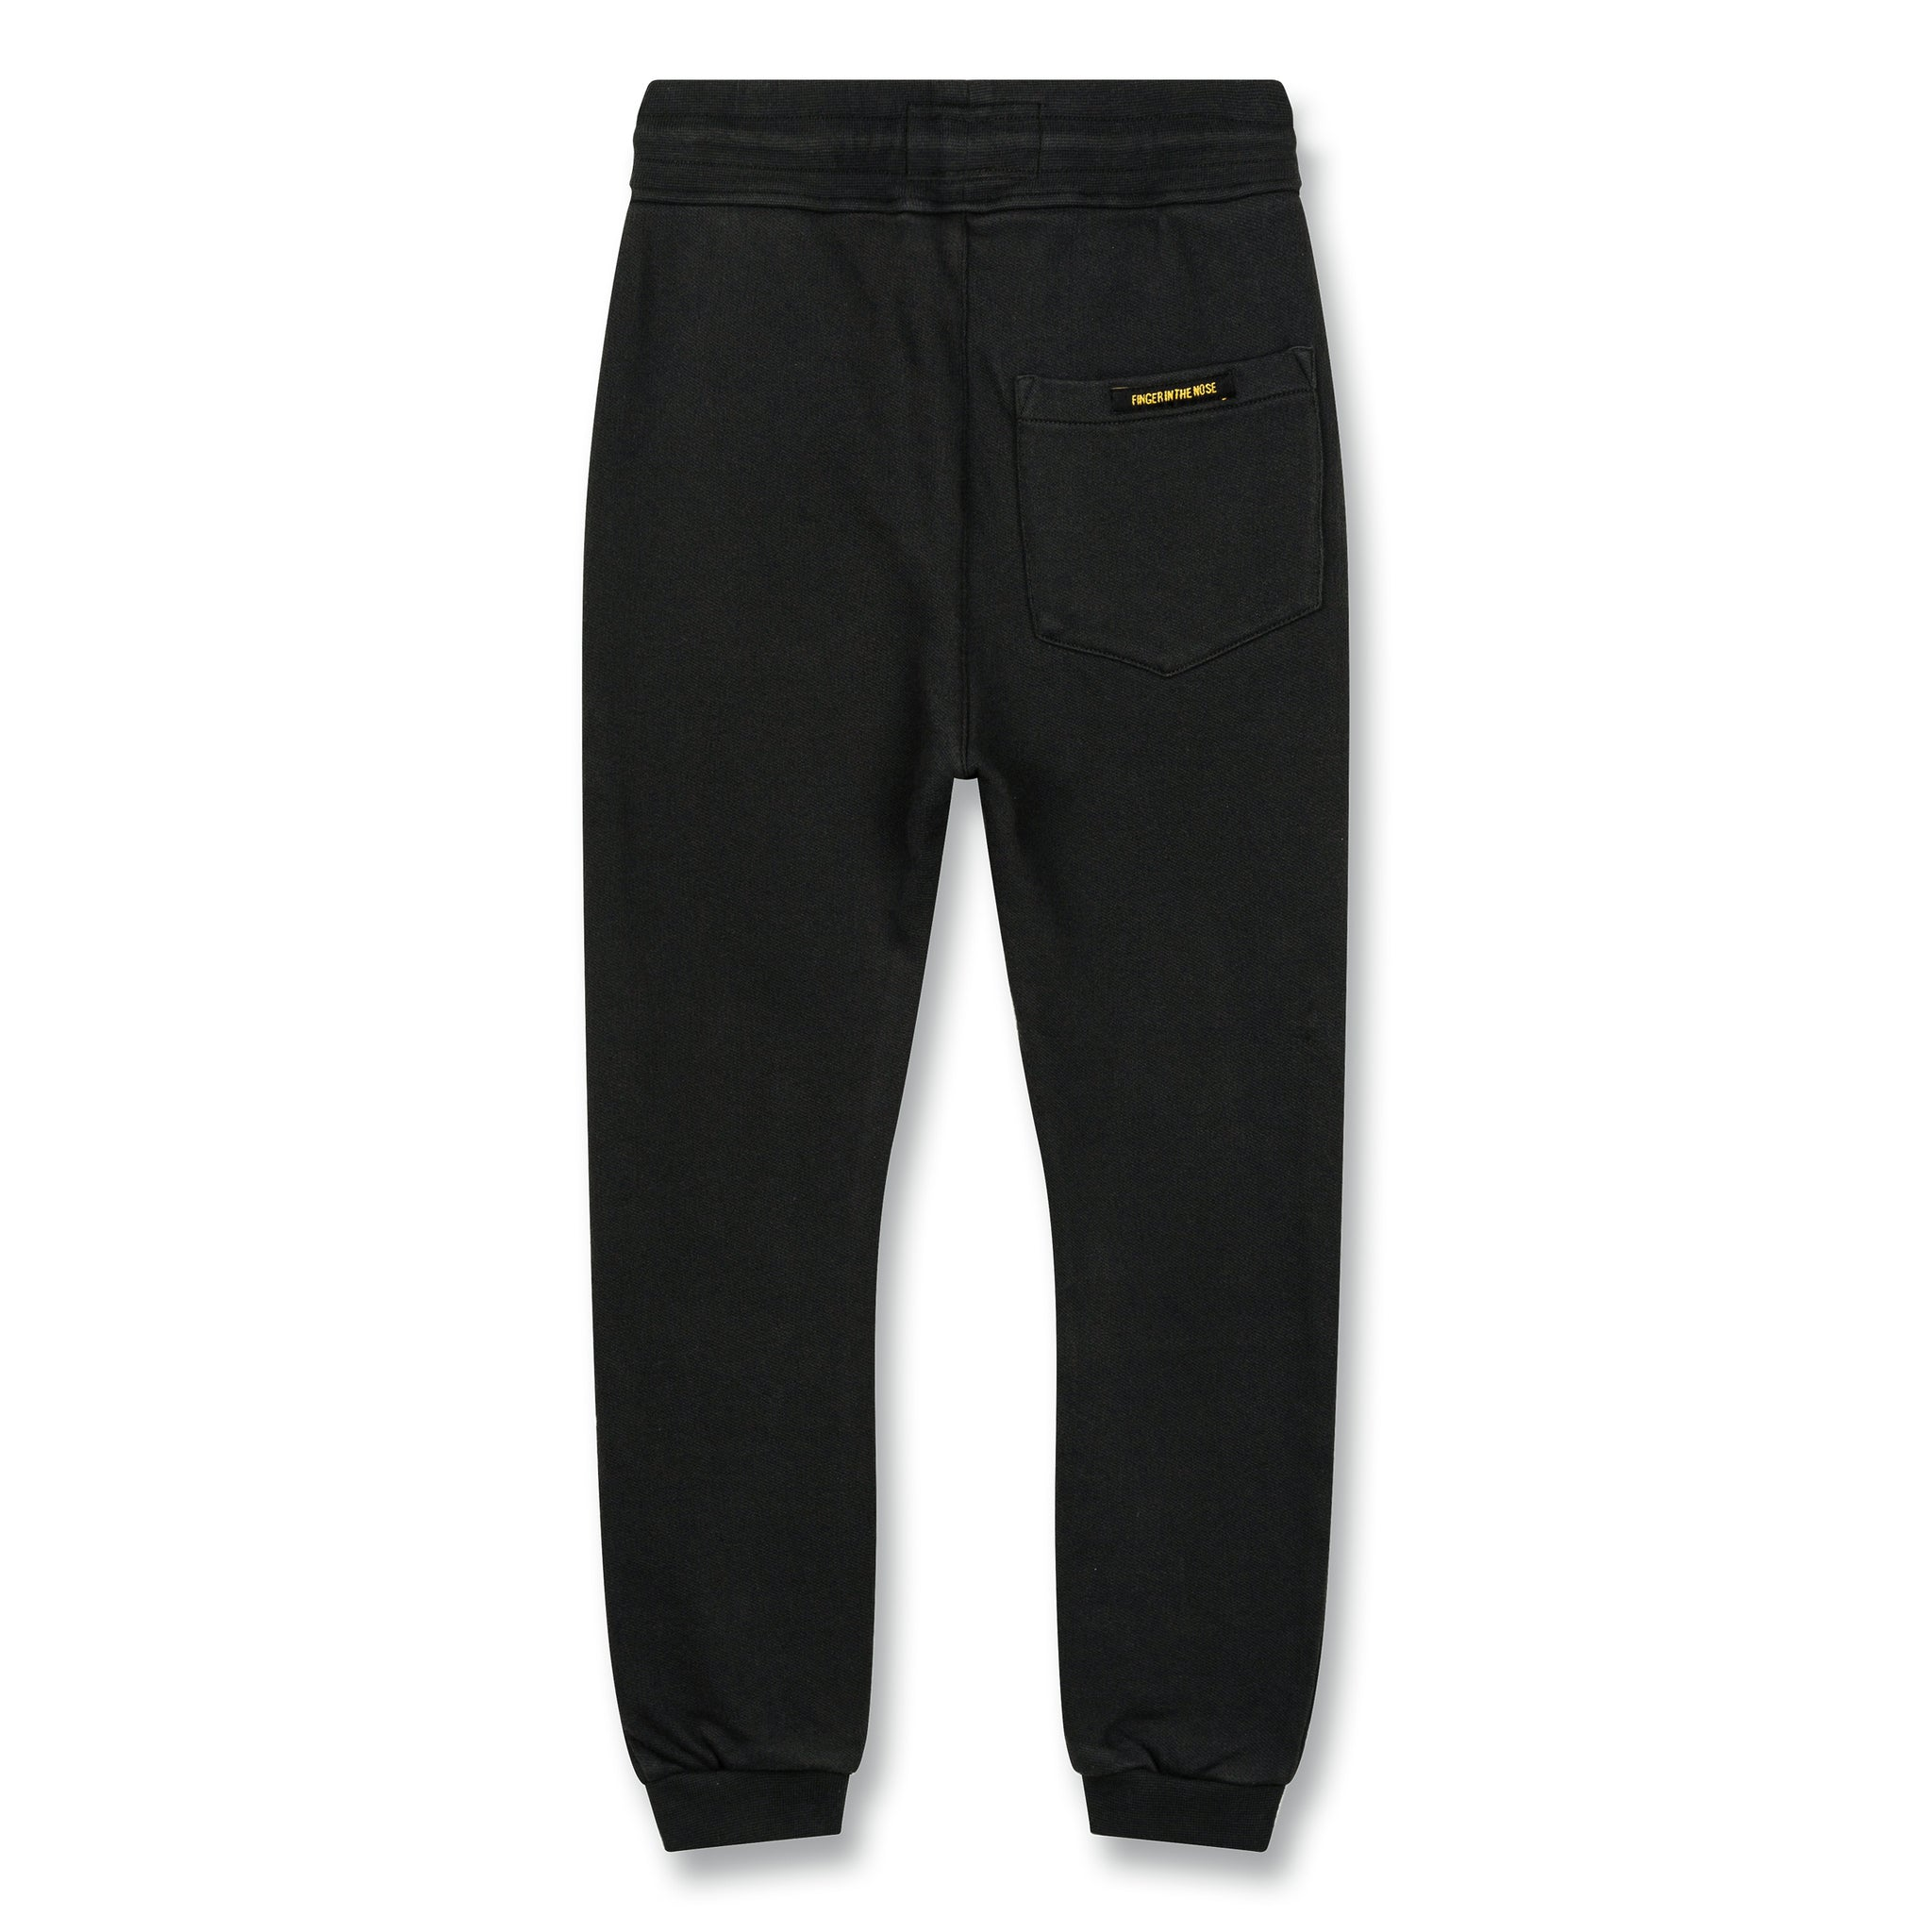 SPRINT Black - Jogging Pants 2